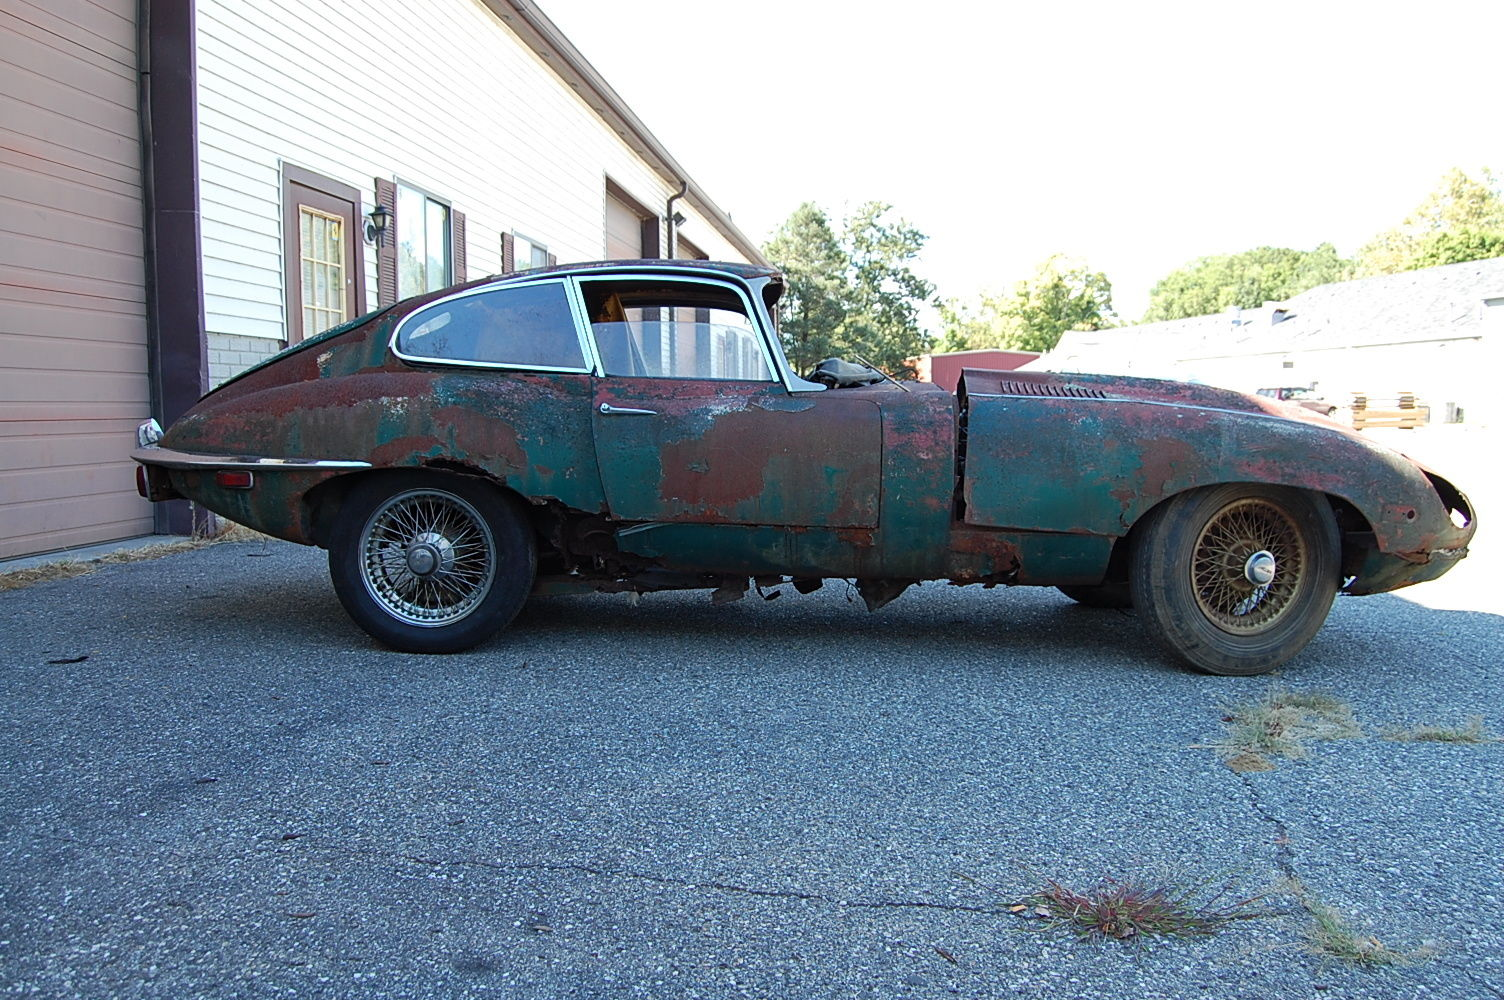 27746 1969 Jaguar Xke Series 2 Coupe Needs Restoration Includes Extra Front Bon in addition Ref 82 1977 Volkswagen Beetle Baja together with 3502 1969 vw single cab pickup together with Ford Sync Touch 800x384 Wallpaper 106afe676641e9b3 in addition 68880 Where How Find Out My Engine Size Year. on 1969 jaguar e type engine